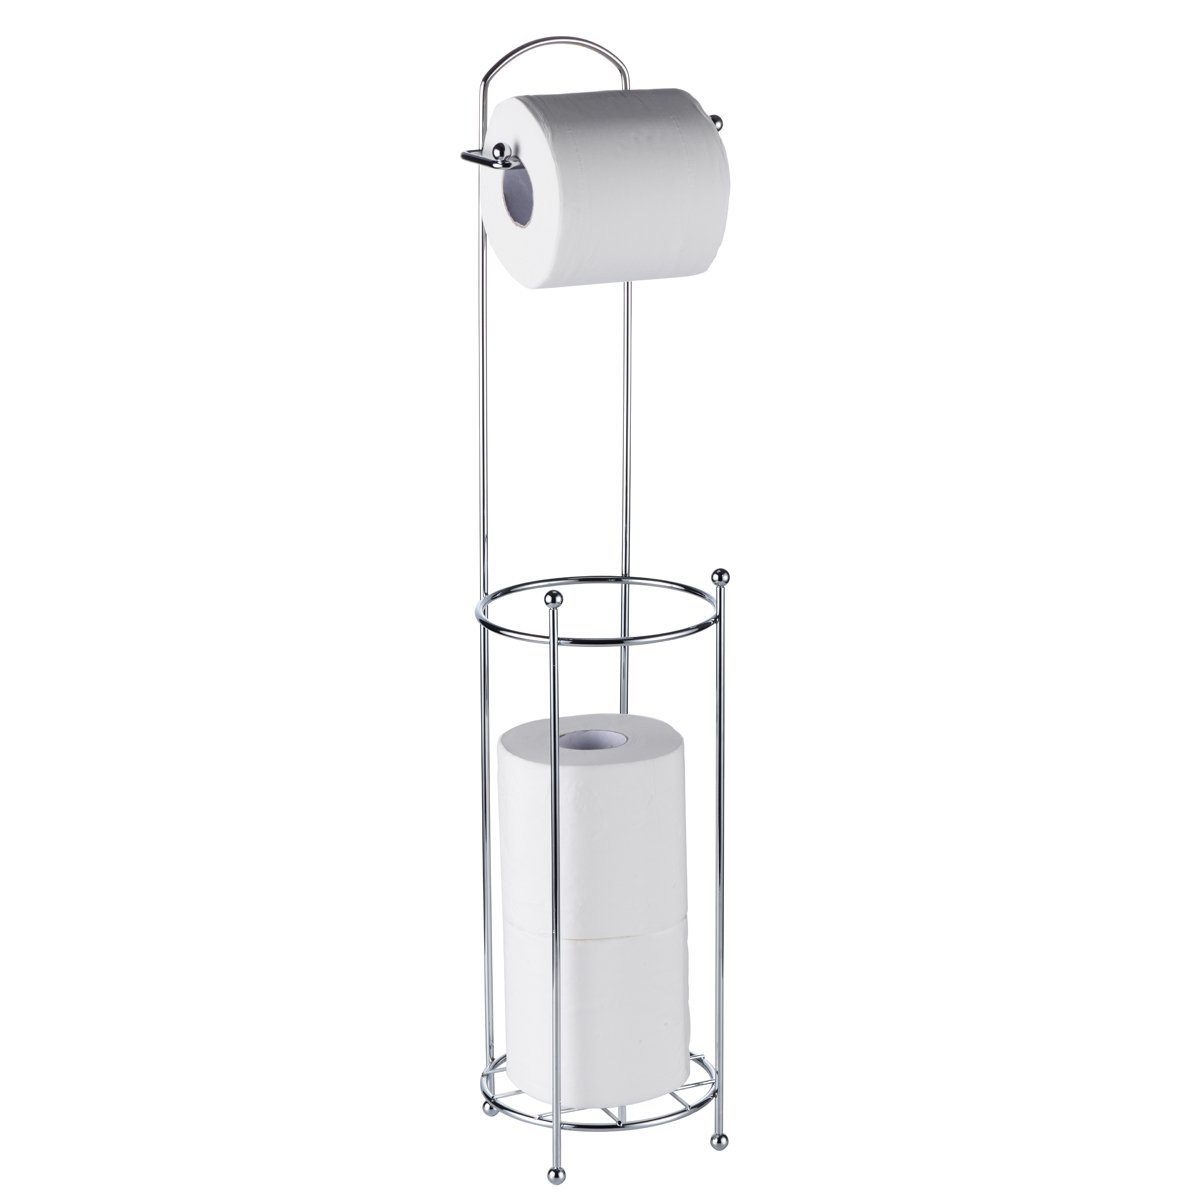 Stainless Steel Chrome Plated Free Standing Toilet Paper Roll Holder Wire Frame Bathroom Tissue Holder Shelf 3 Roll Storage Denny International